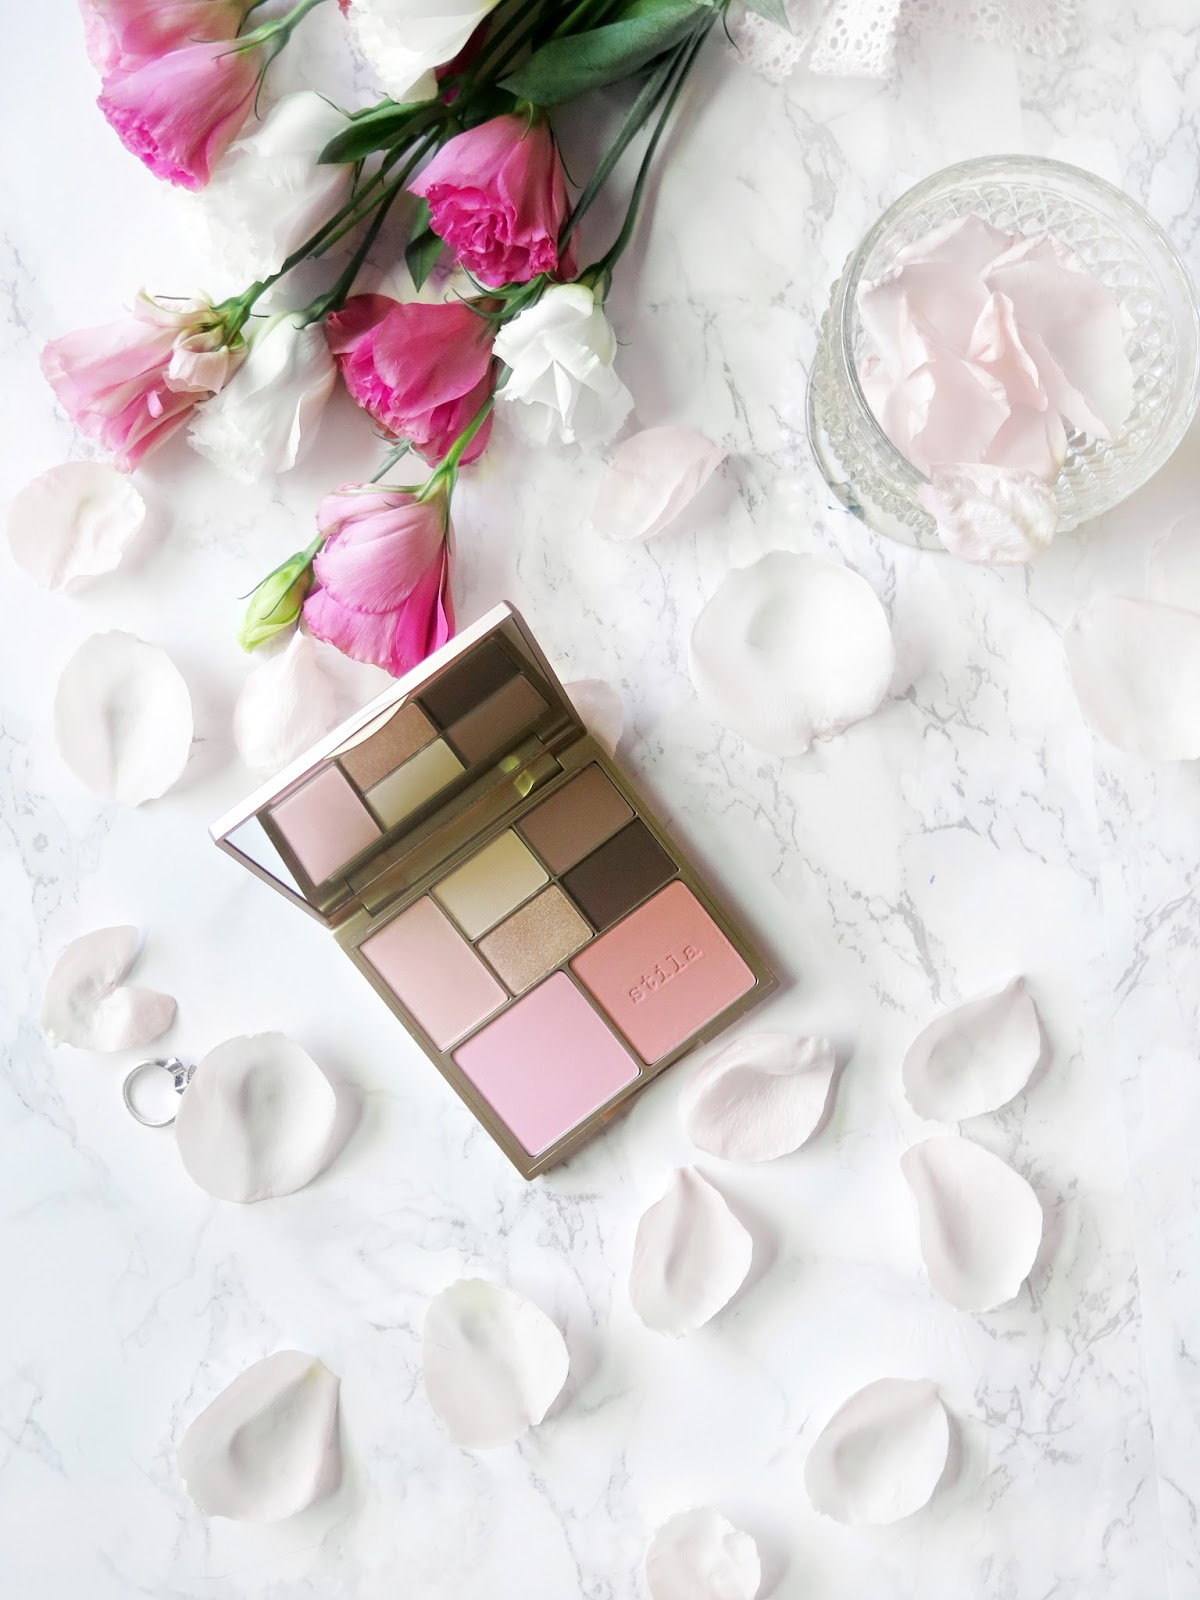 The Perfect Personalized Palette | Stila's Perfect Me Perfect Hue Palette in Fair/Light | Review & Swatches | labellesirene.ca